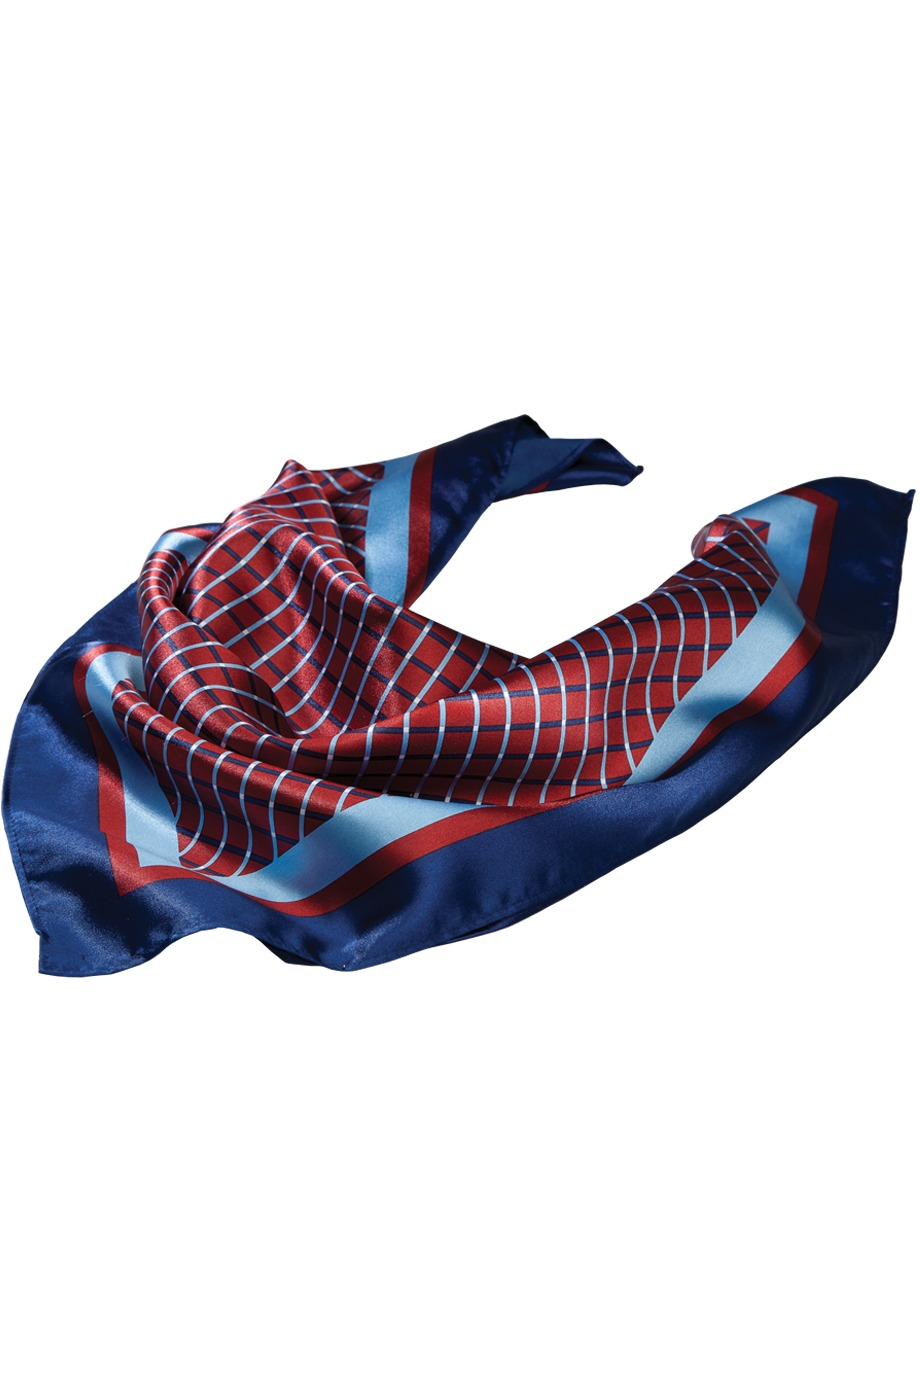 Edwards Garment CR50 - Crossroads Scarf